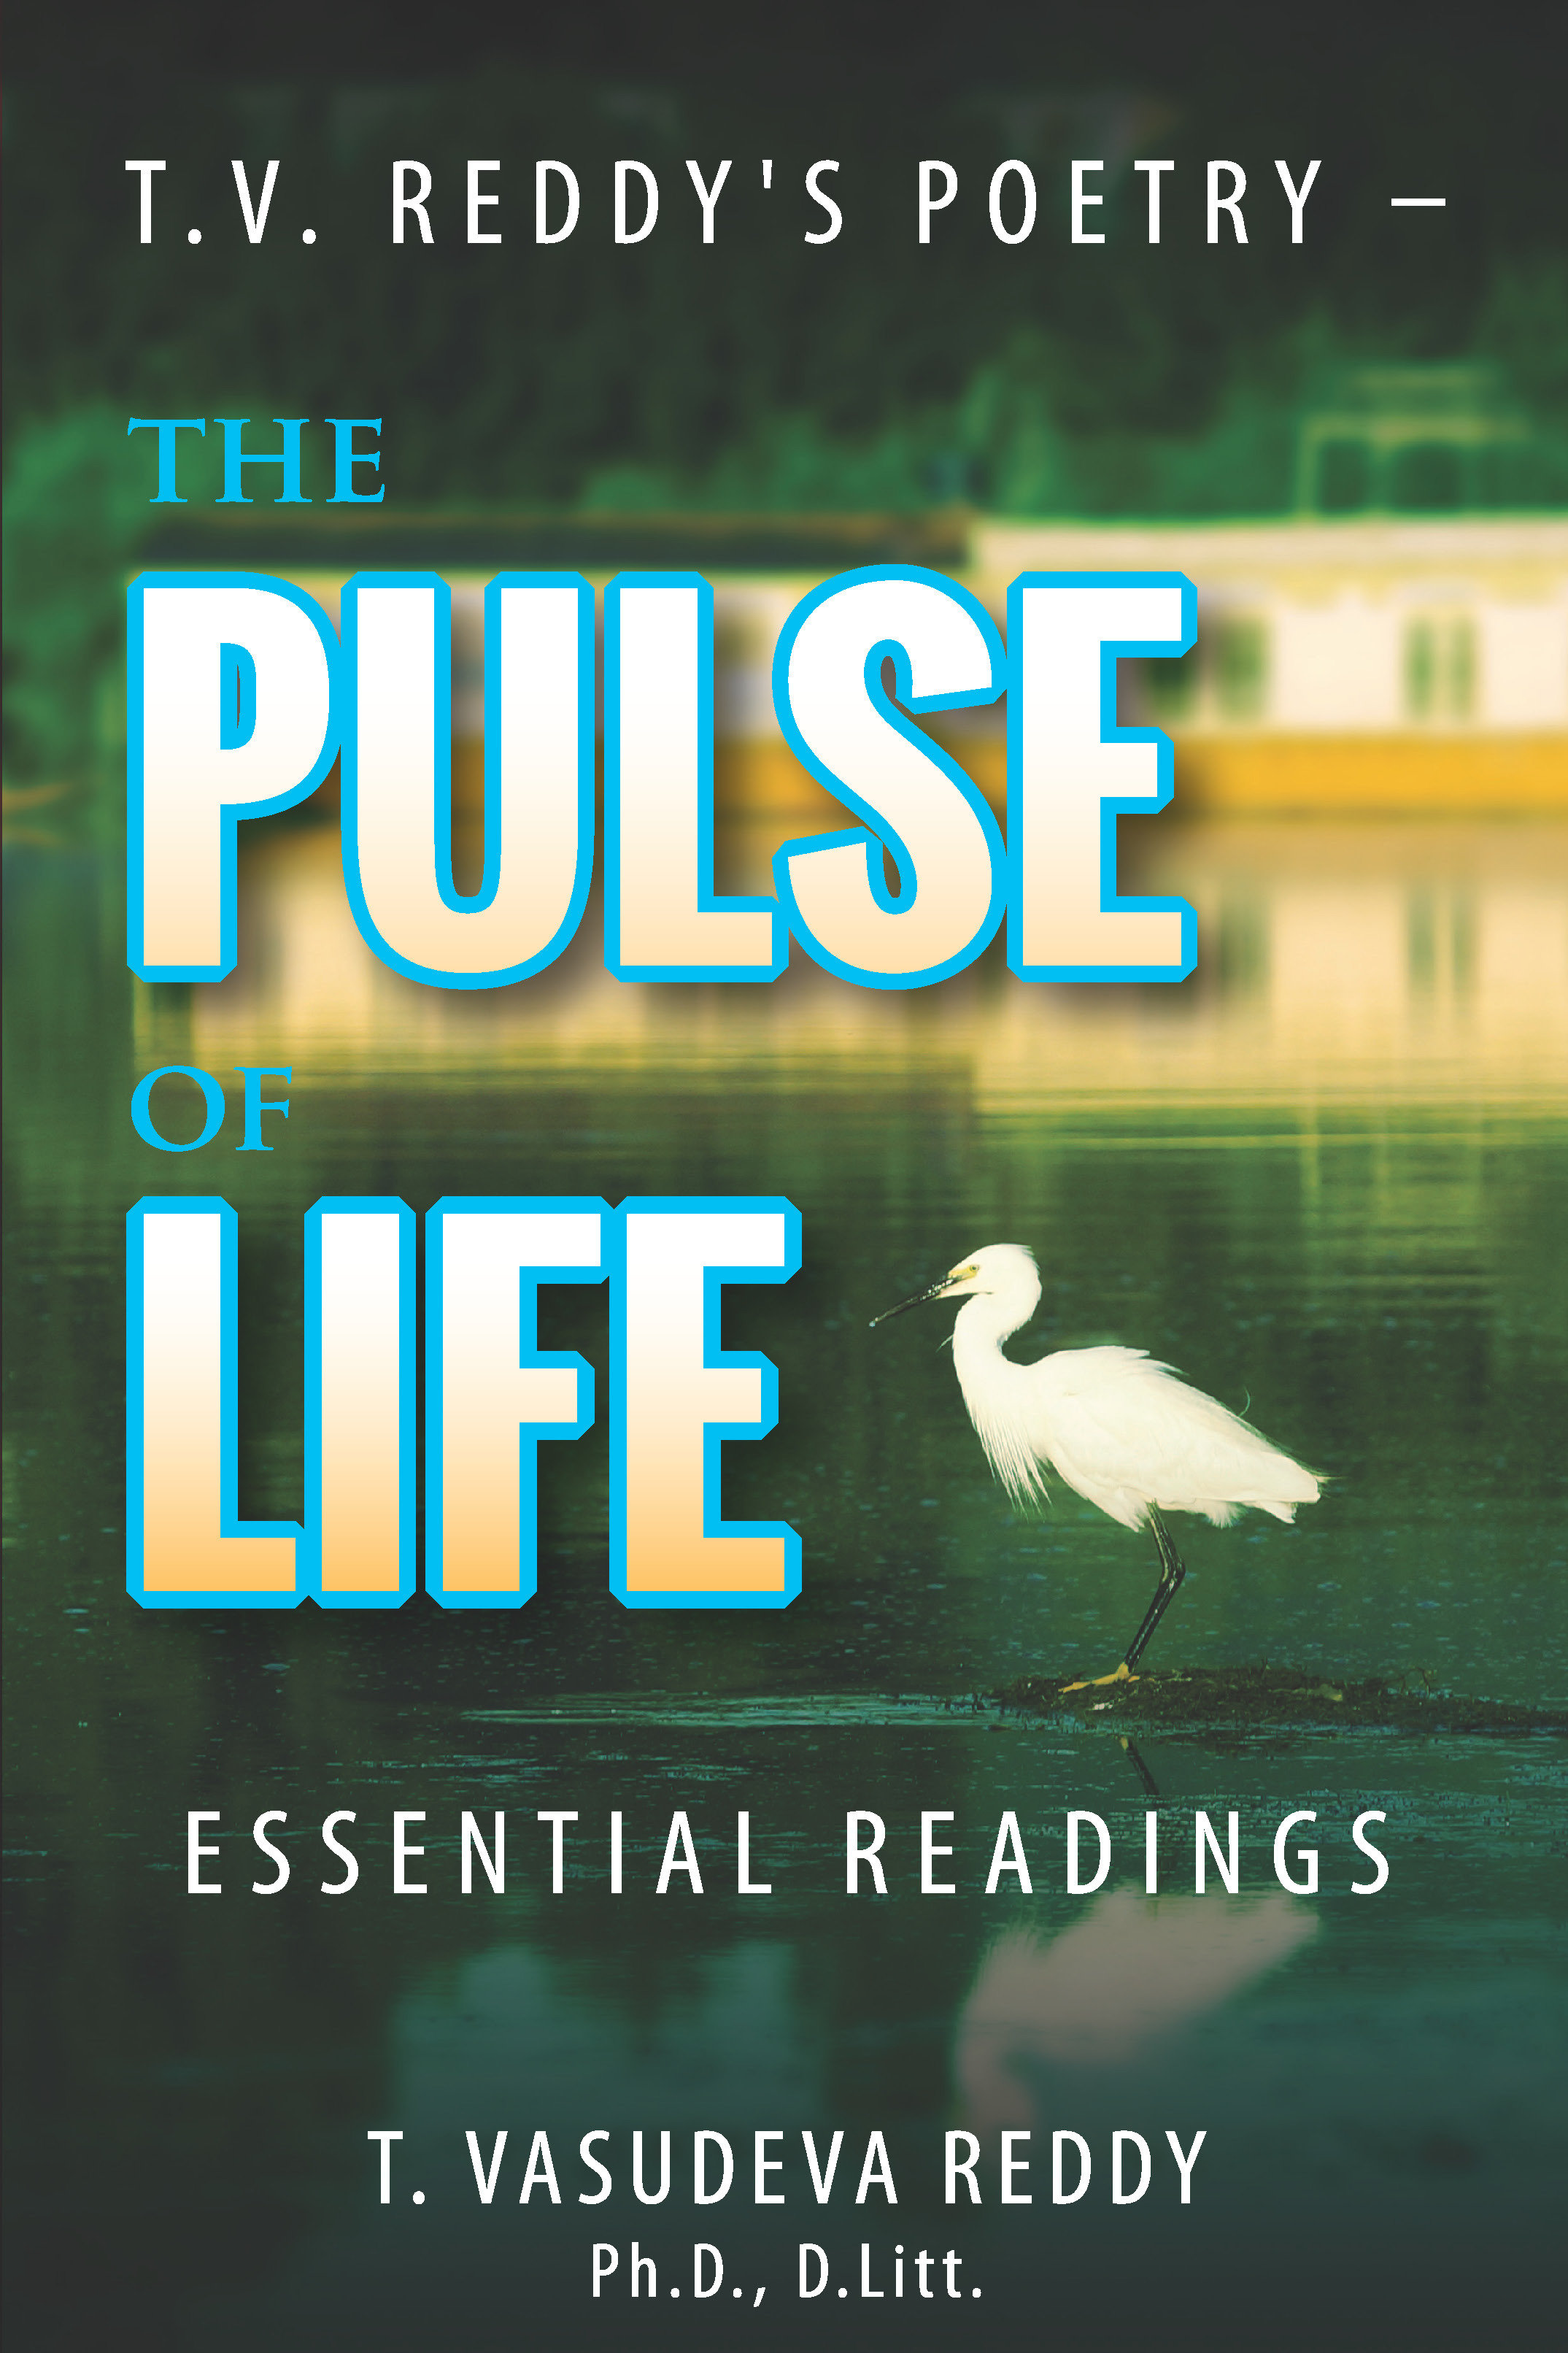 T.V. Reddy's Poetry - The Pulse of Life: Essential Readings 978-1-61599-344-4